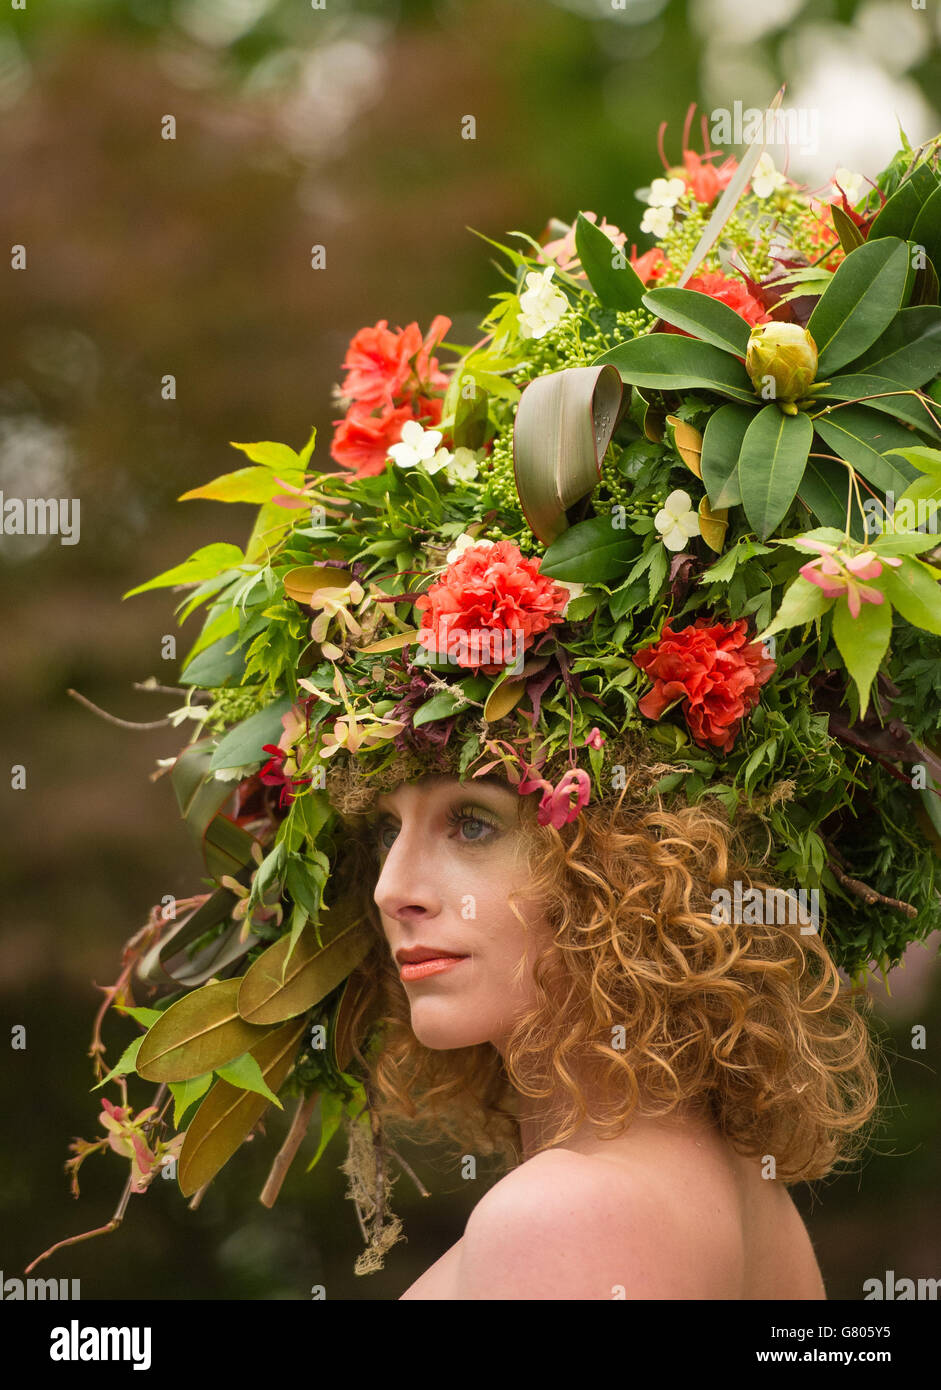 A model displays a floral dress and hat created by floral stylists Okishima & Simmonds for the Hillier Nurseries Stock Photo